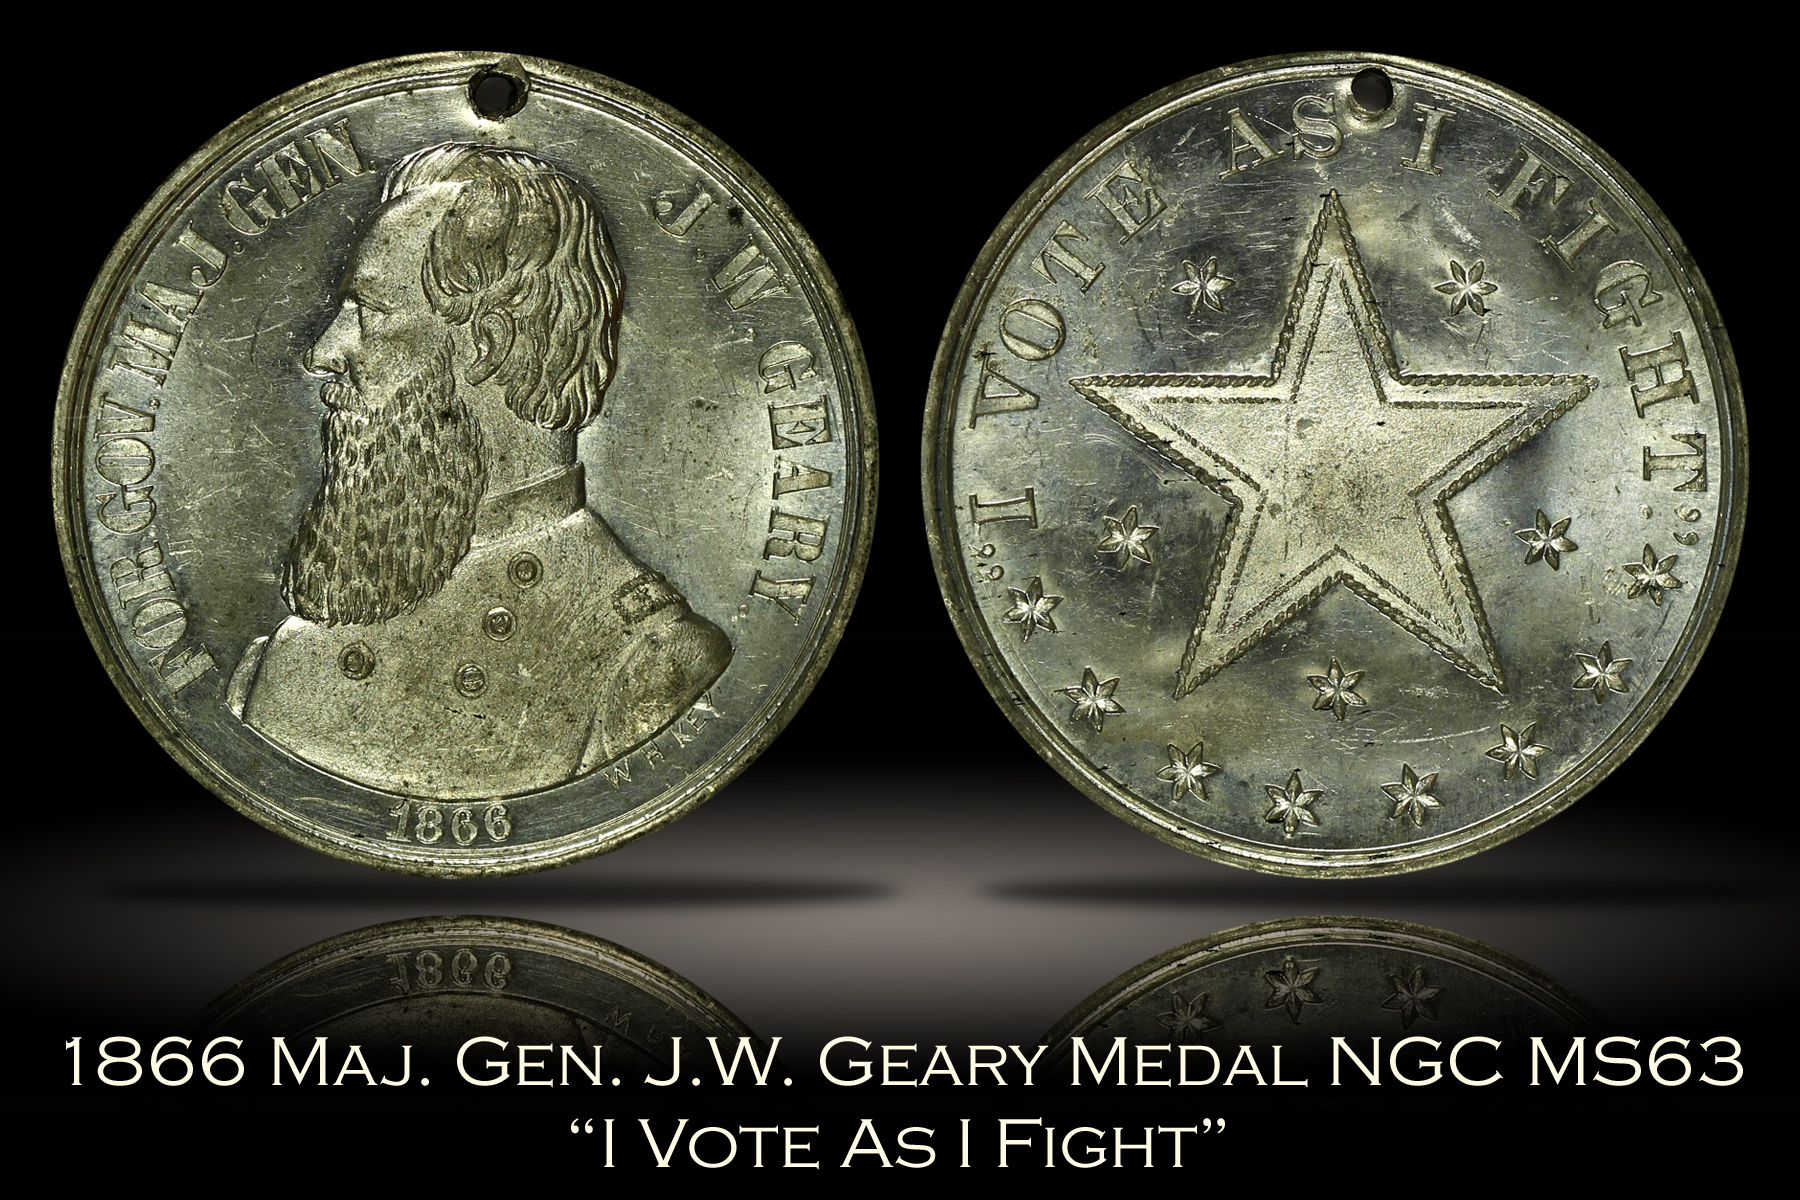 1866 Maj. Gen. J.W. Geary Vote As I Fight Medal NGC MS63